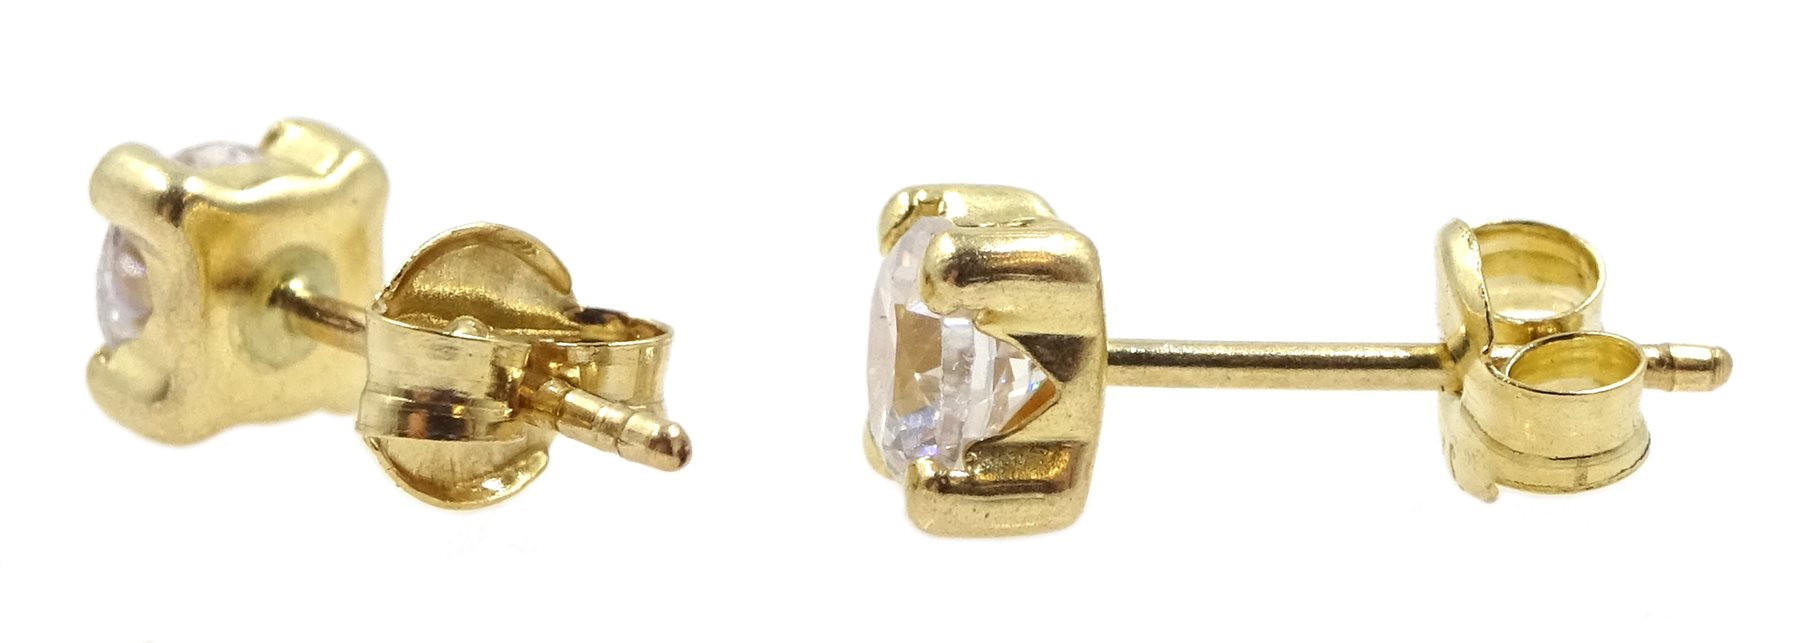 Pair of 9ct gold cubic zirconia stud earrings, stamped 375 - Image 2 of 2